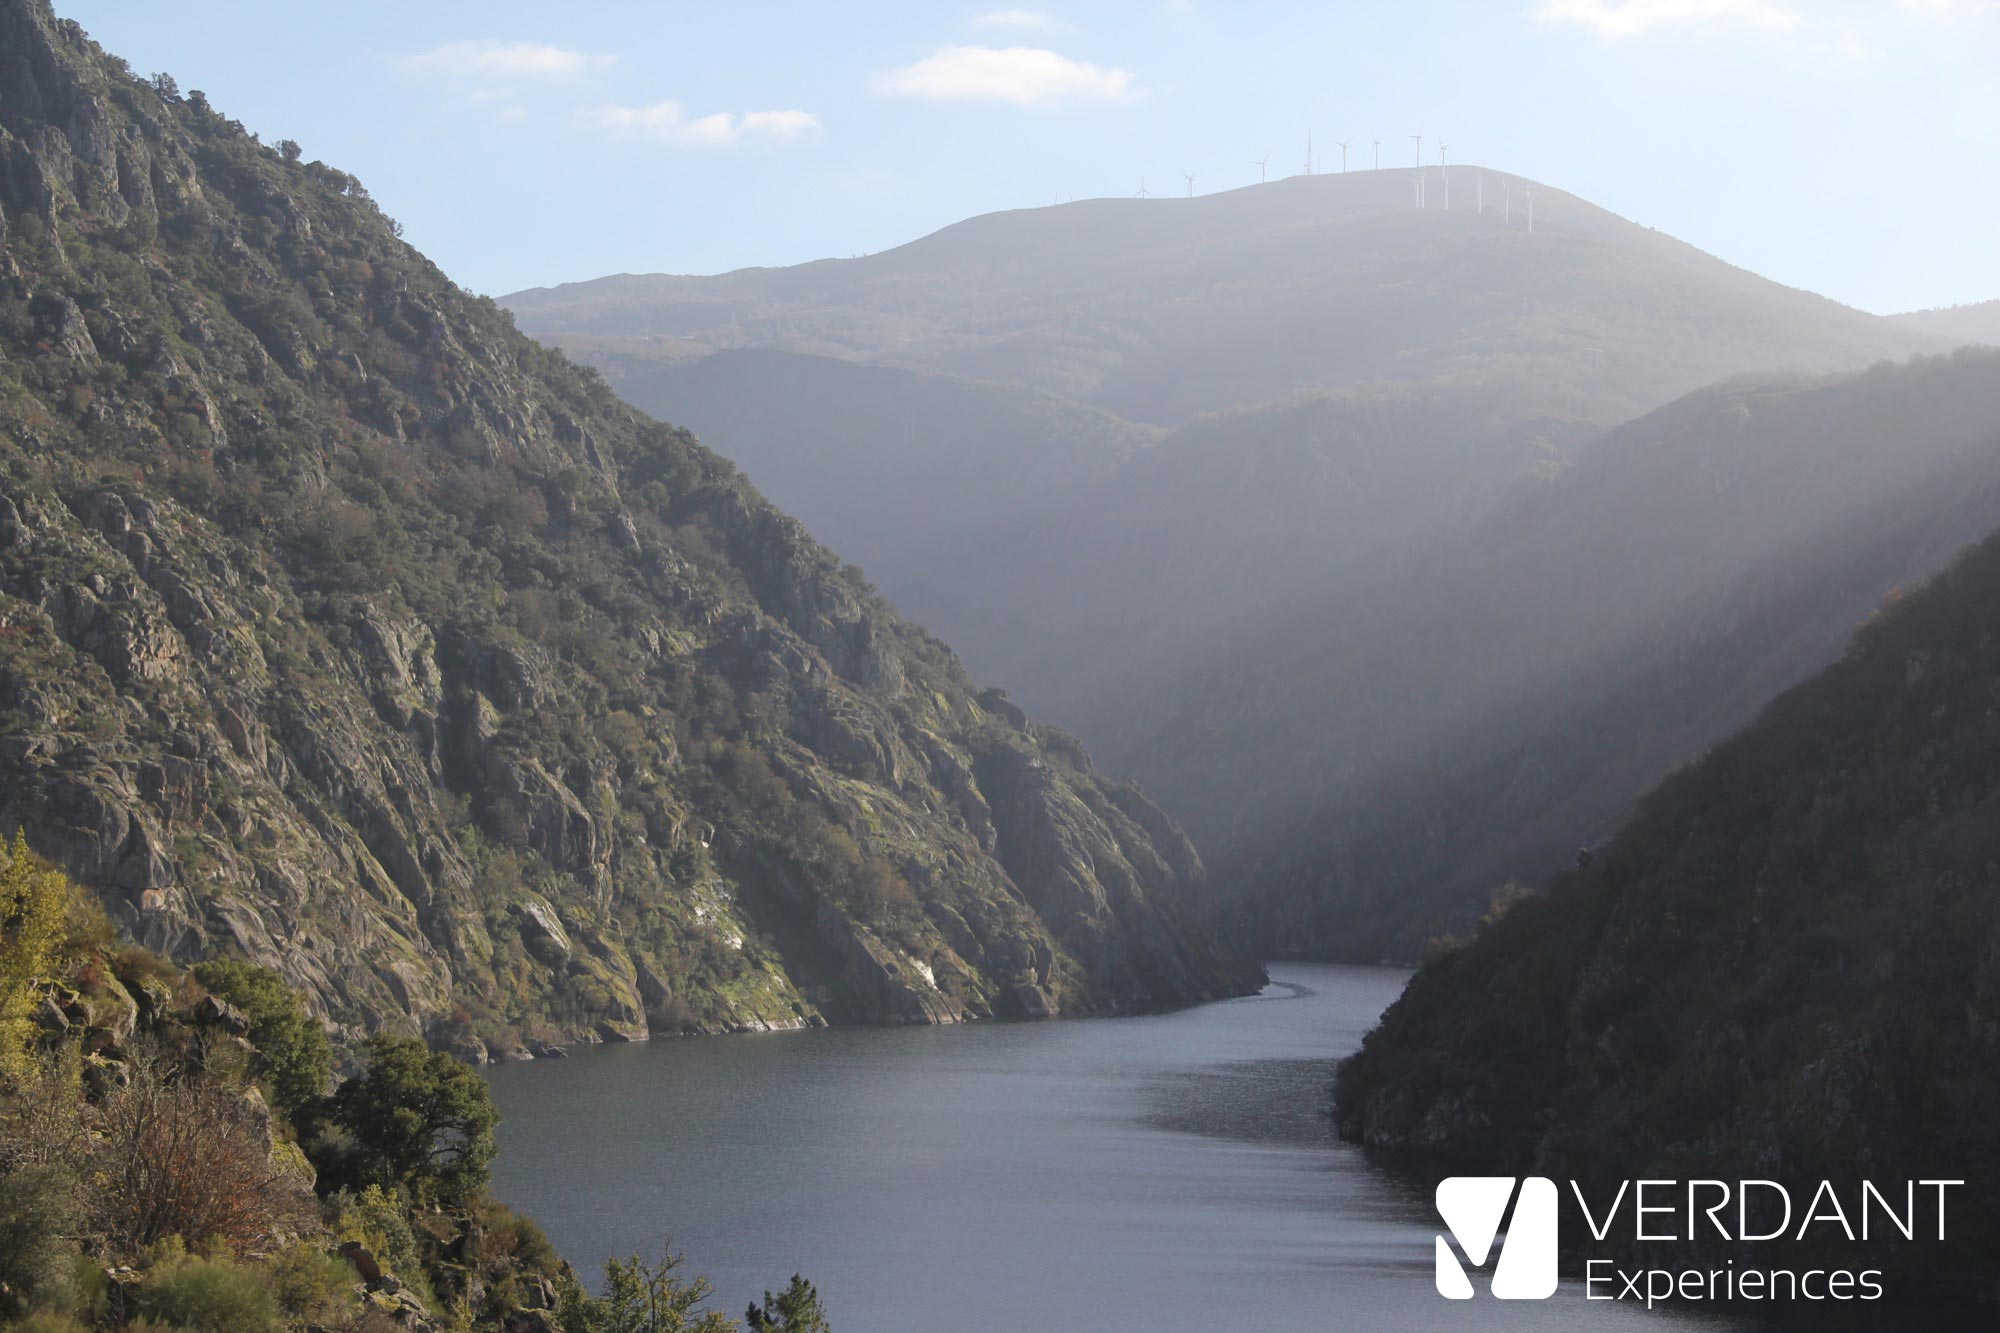 Welcome to Excursion Ribeira Sacra!